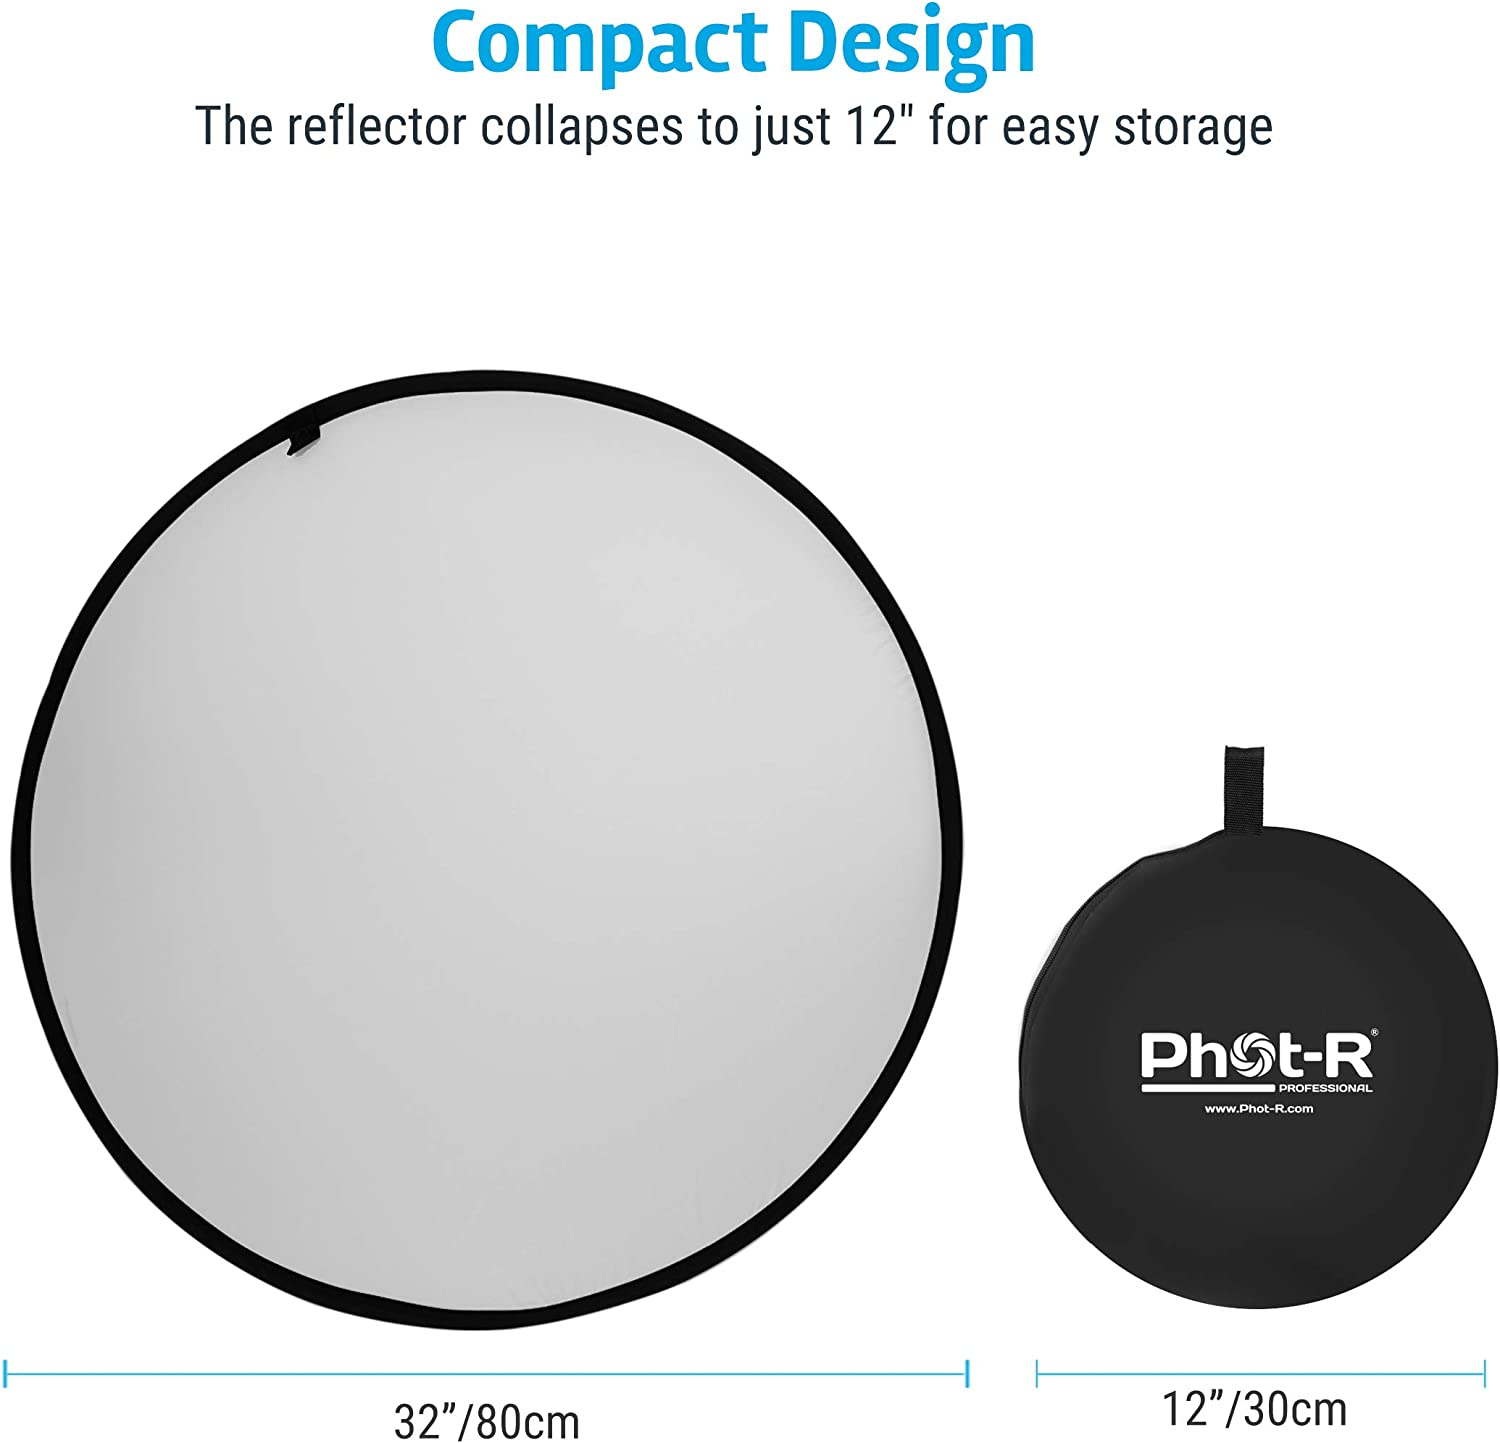 """Carry Case Photography 1.5x2m Reflector Kit for Photoshoots Gold /& Translucent 59/""""x79/"""" Collapsible Portable Studio Diffuser in Black Silver White Phot-R 5in1 Studio Light Reflector 150x200cm"""